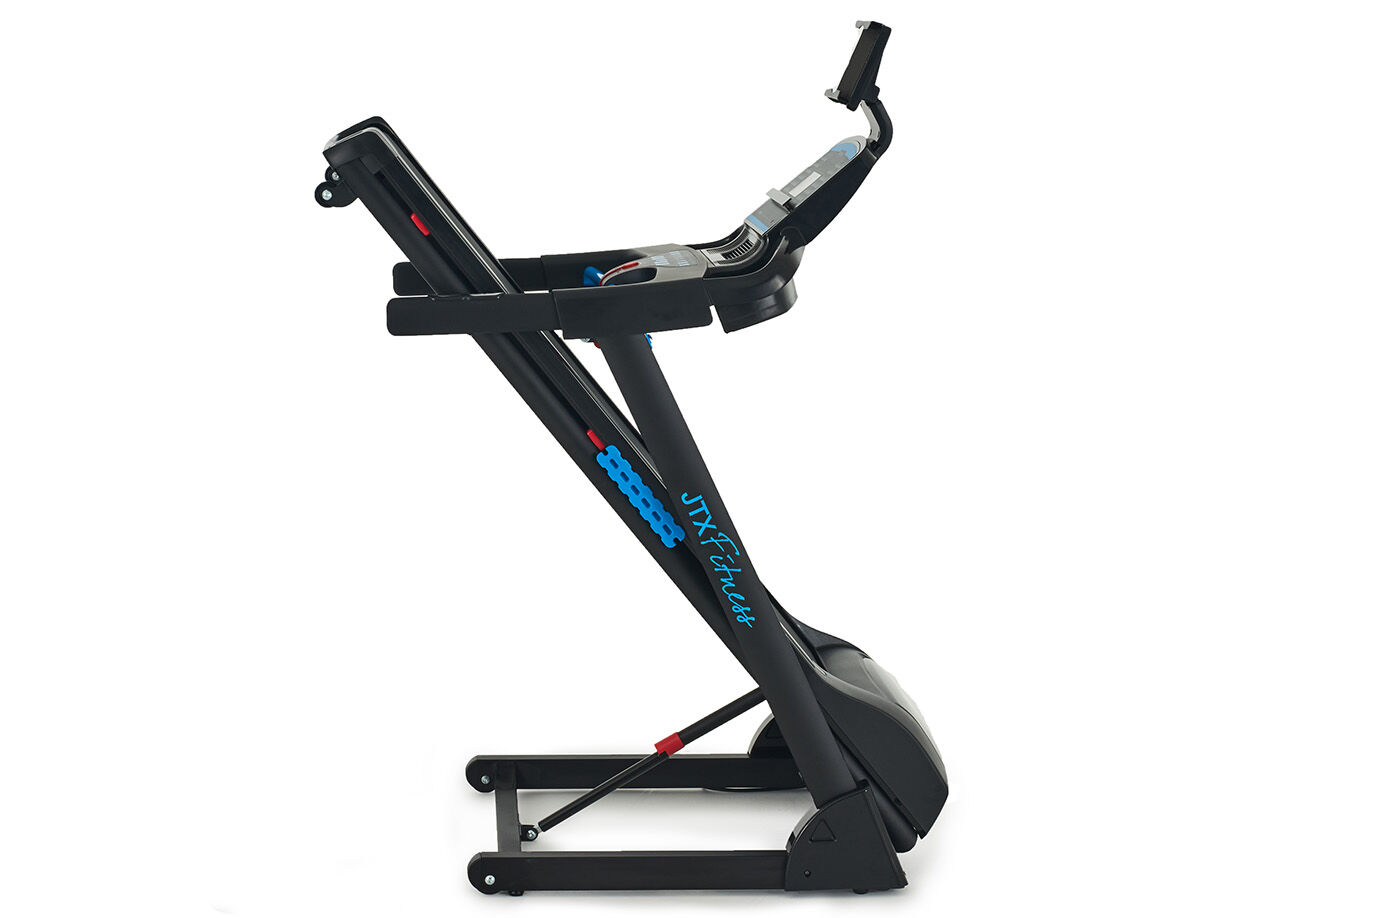 Smallest Electric Treadmill from JTX Fitness